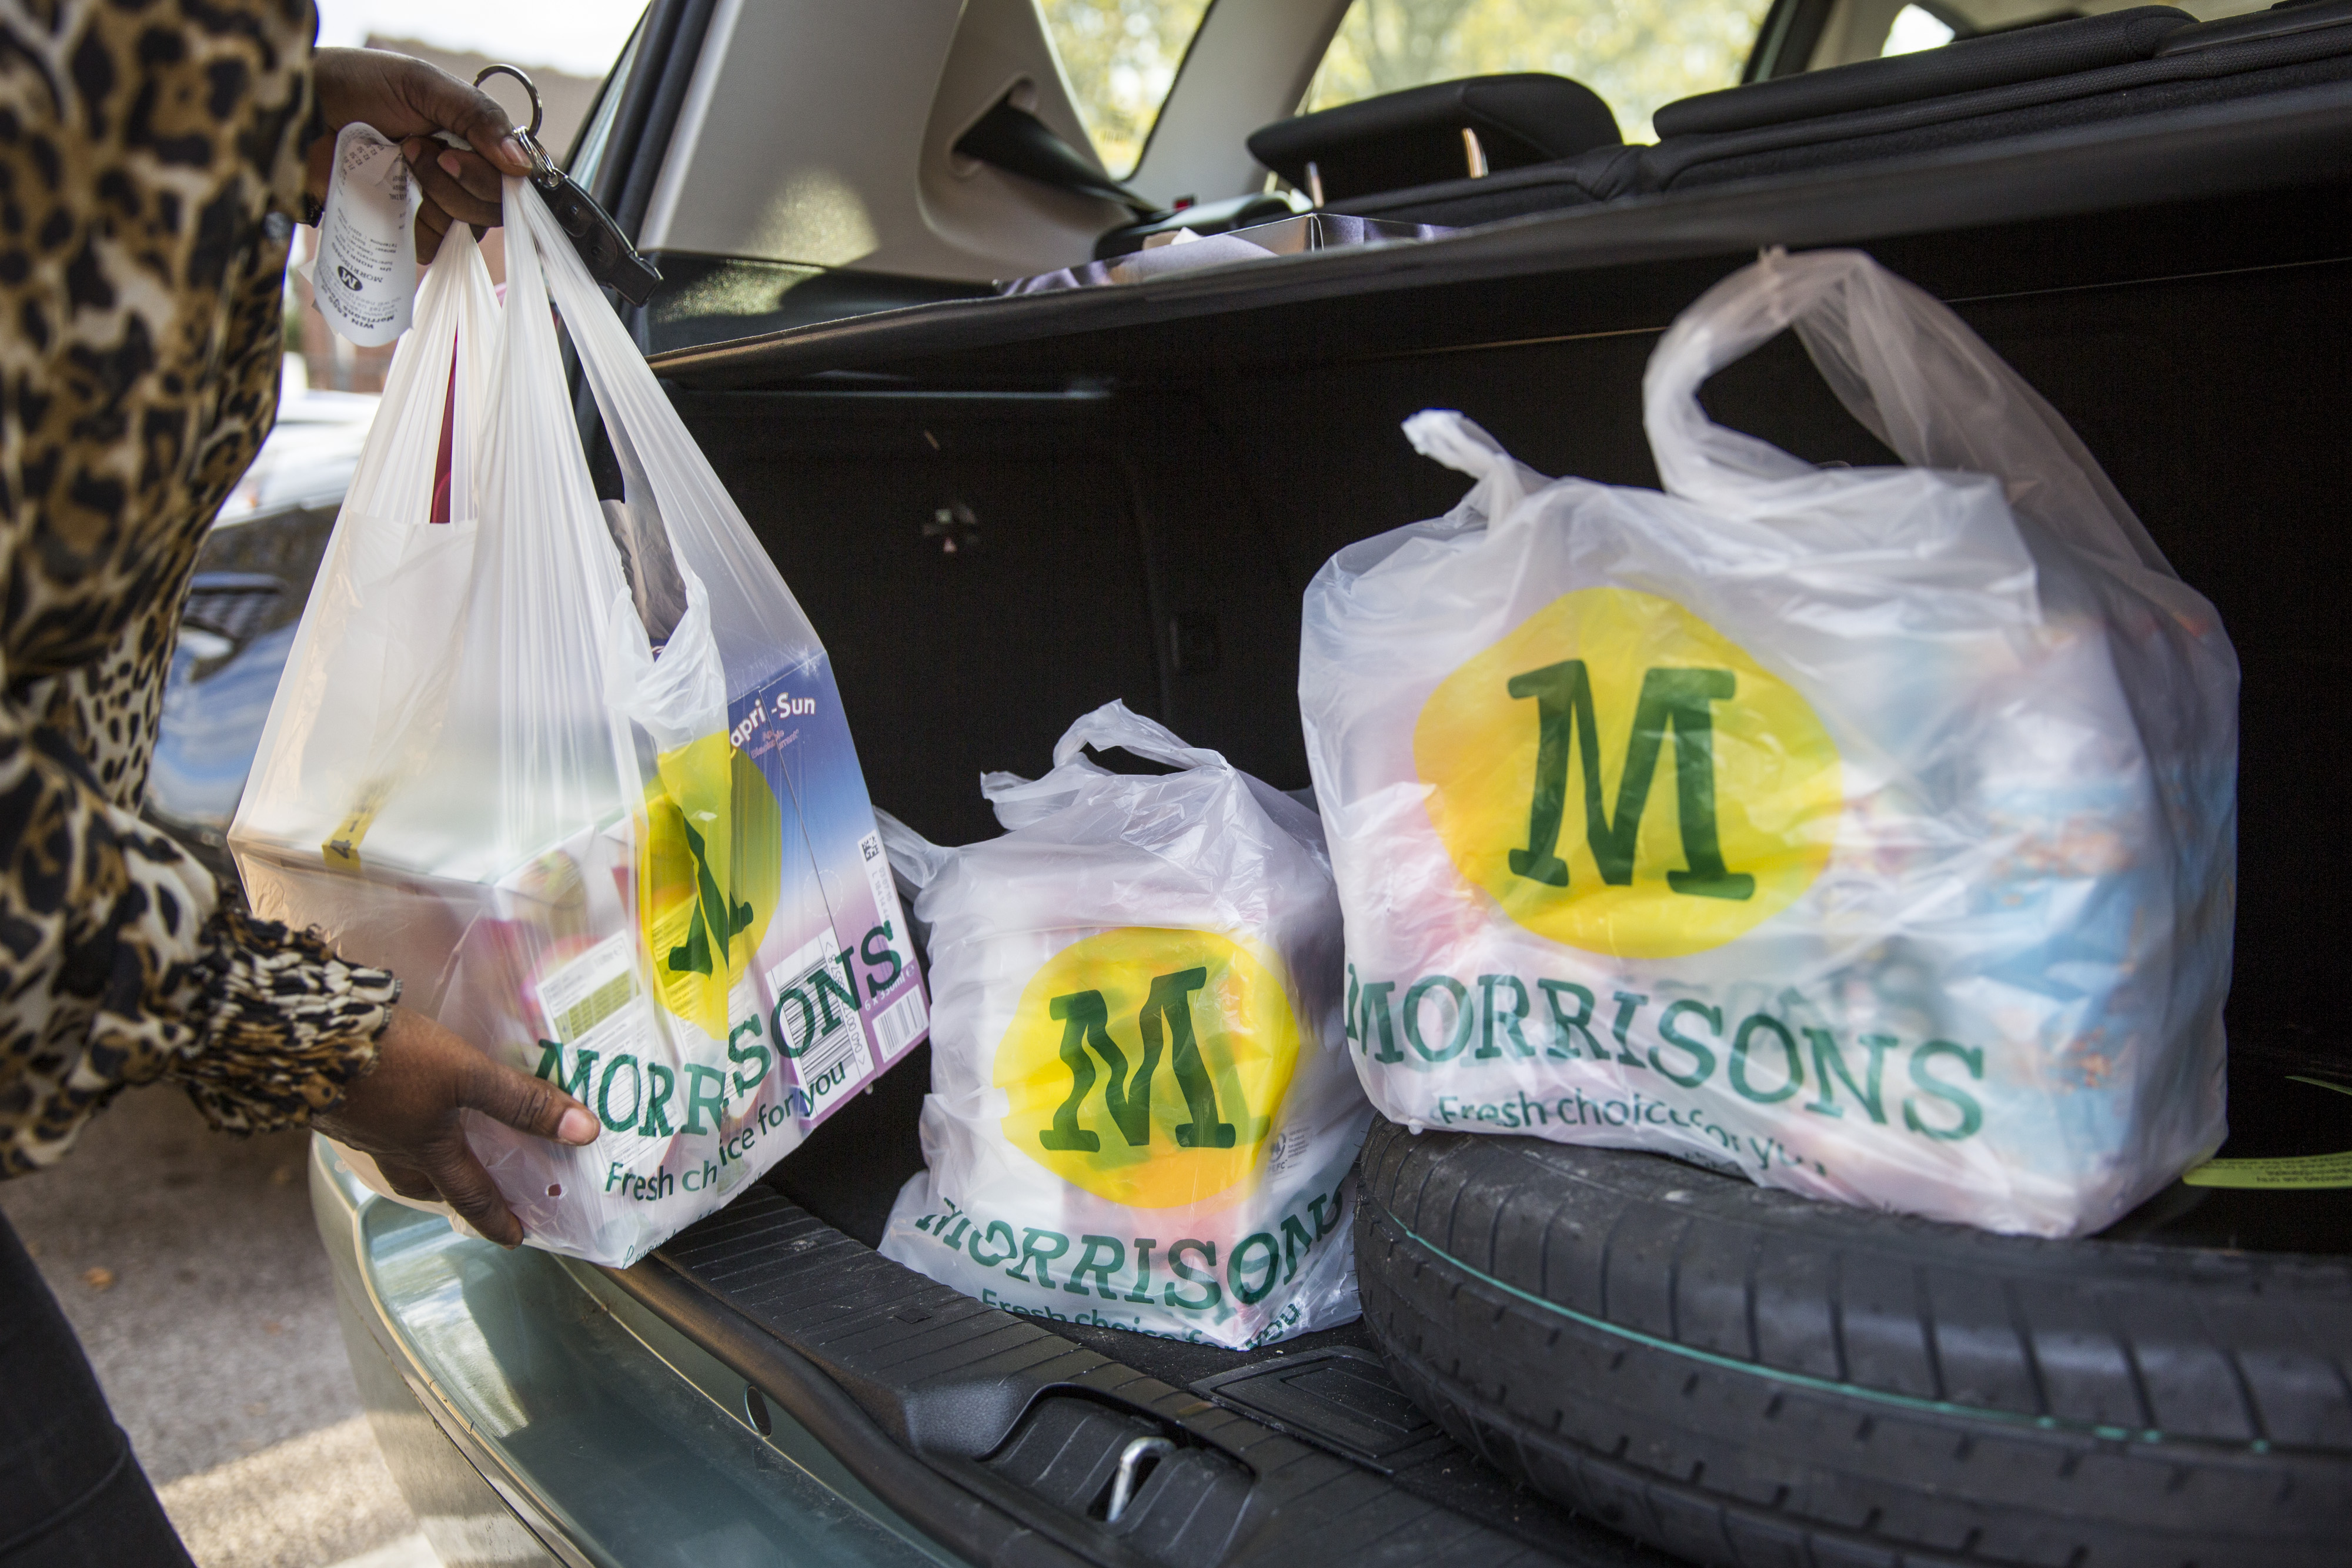 A customer places Morrison's shopping bags in their car in London.